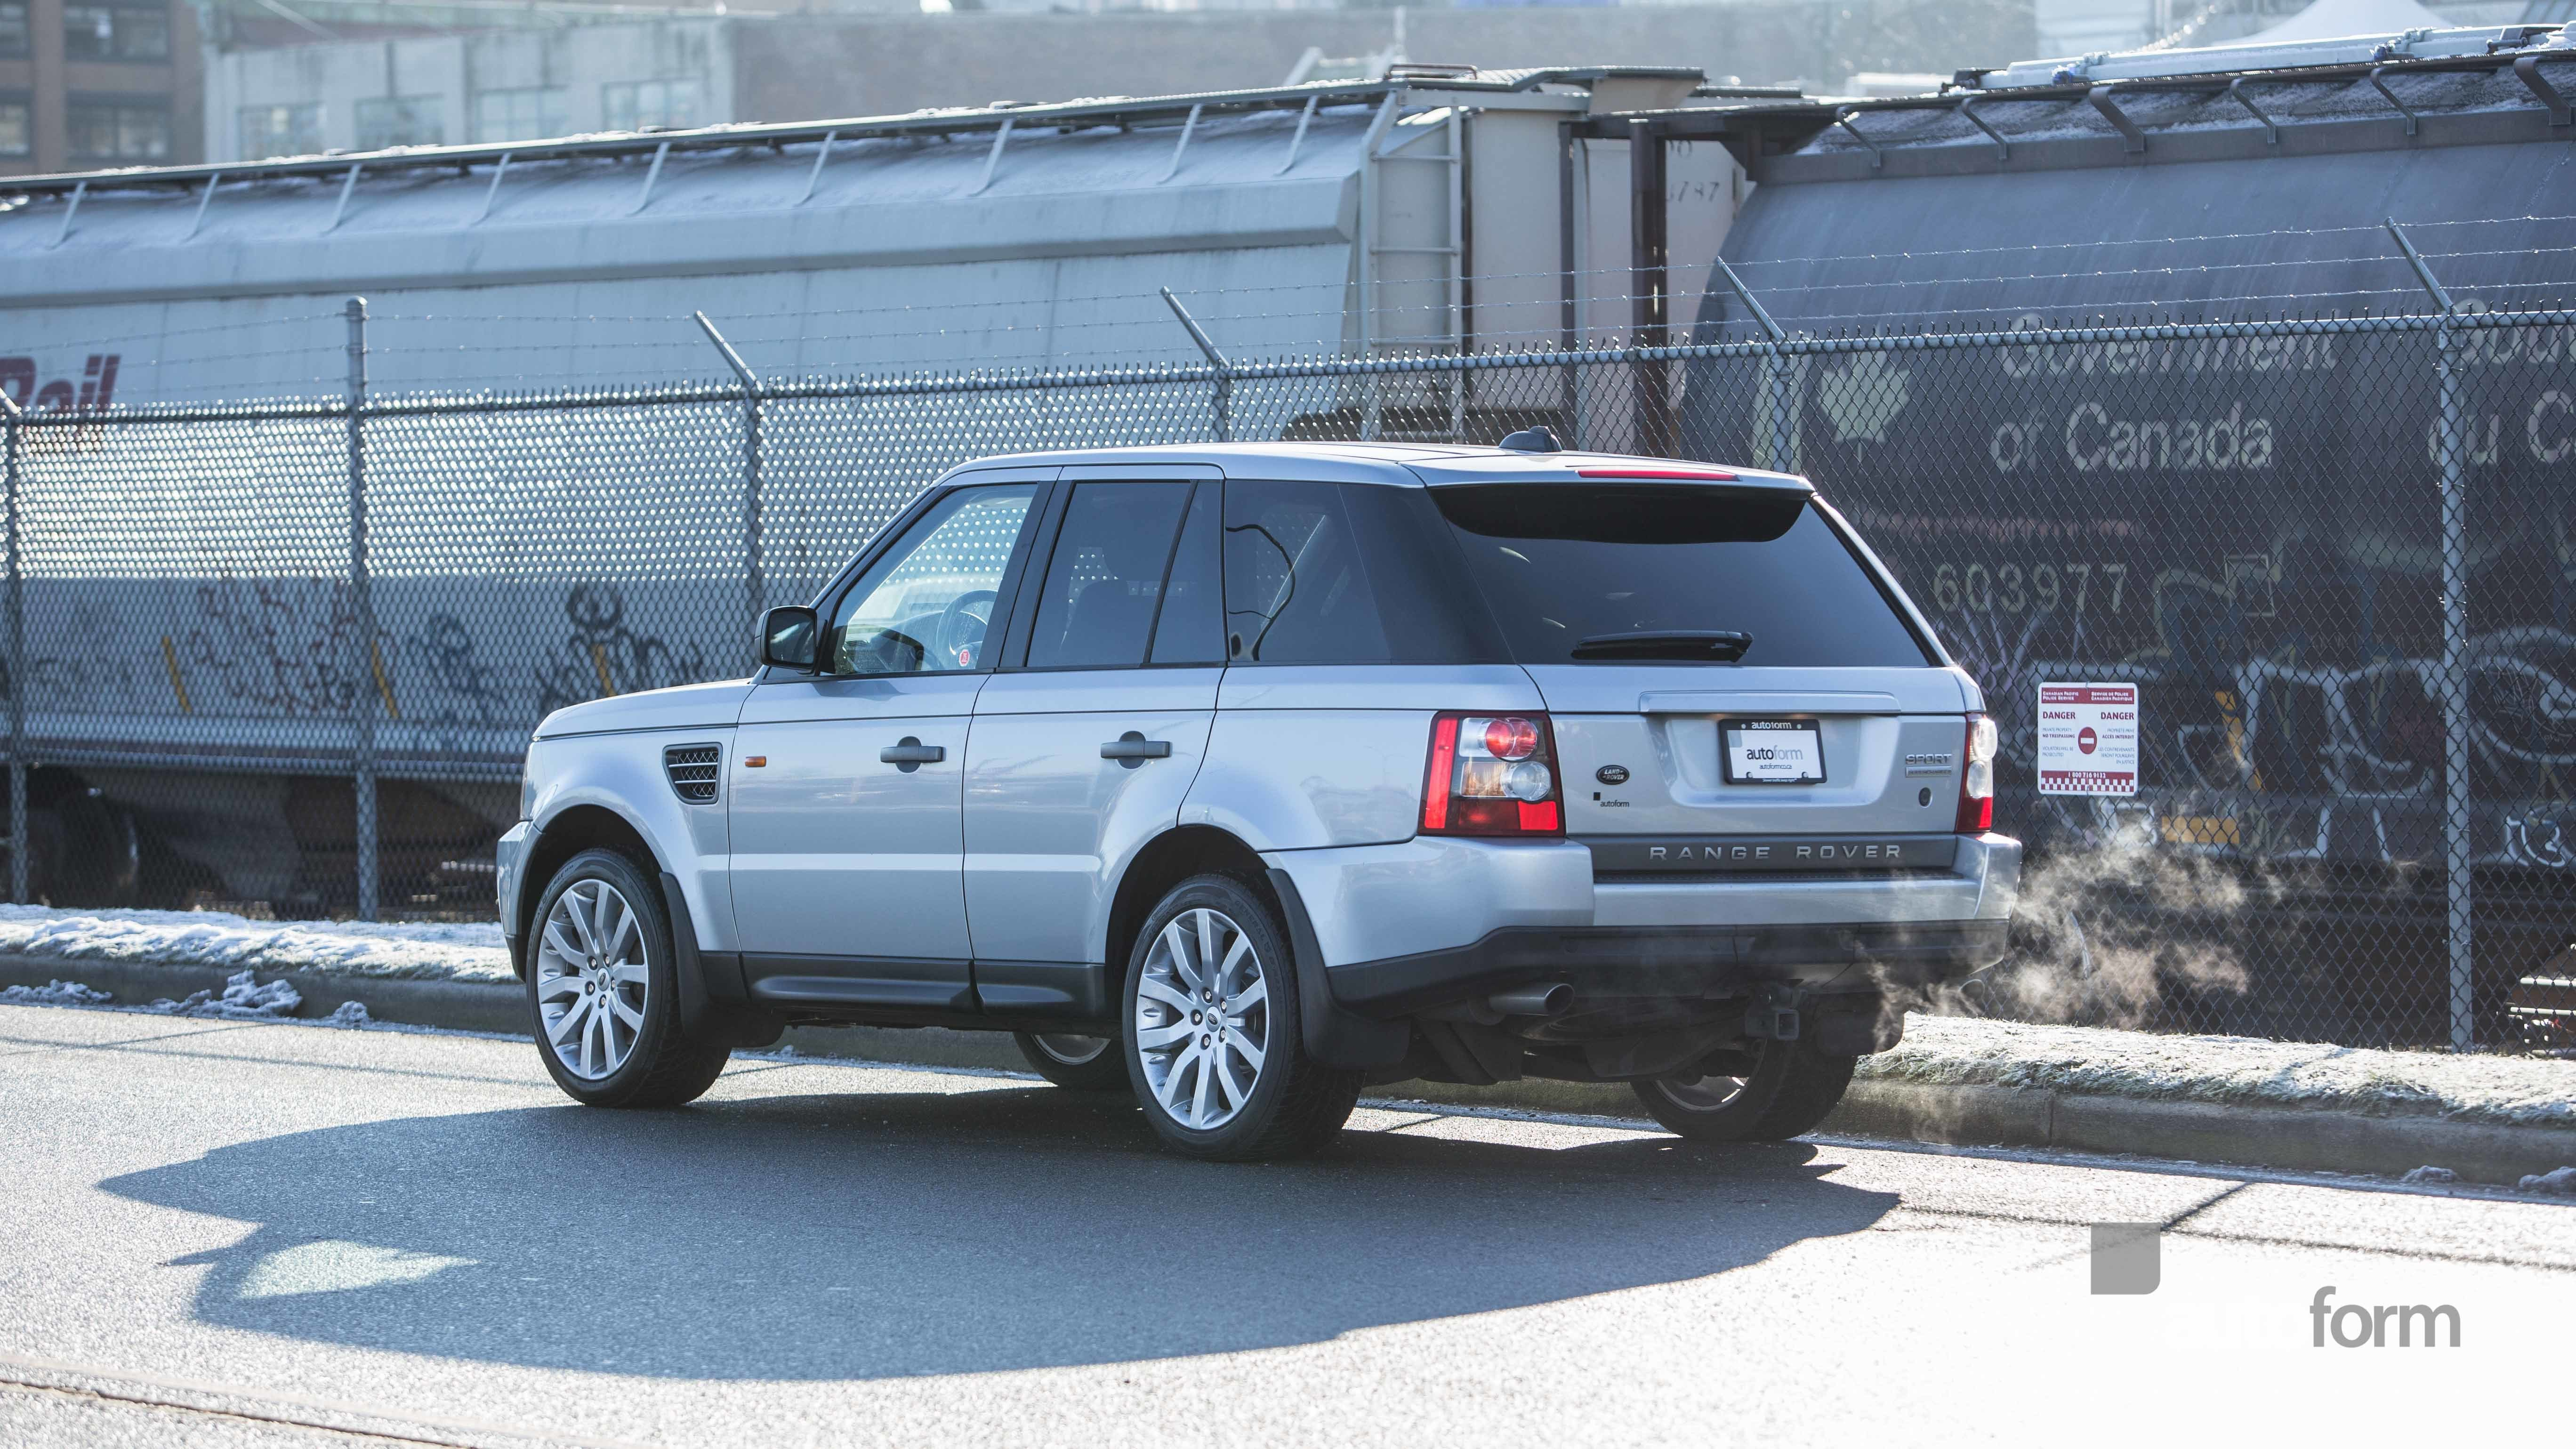 ct vehicles supercharged range autoform dealers rover in land autobiography landrover